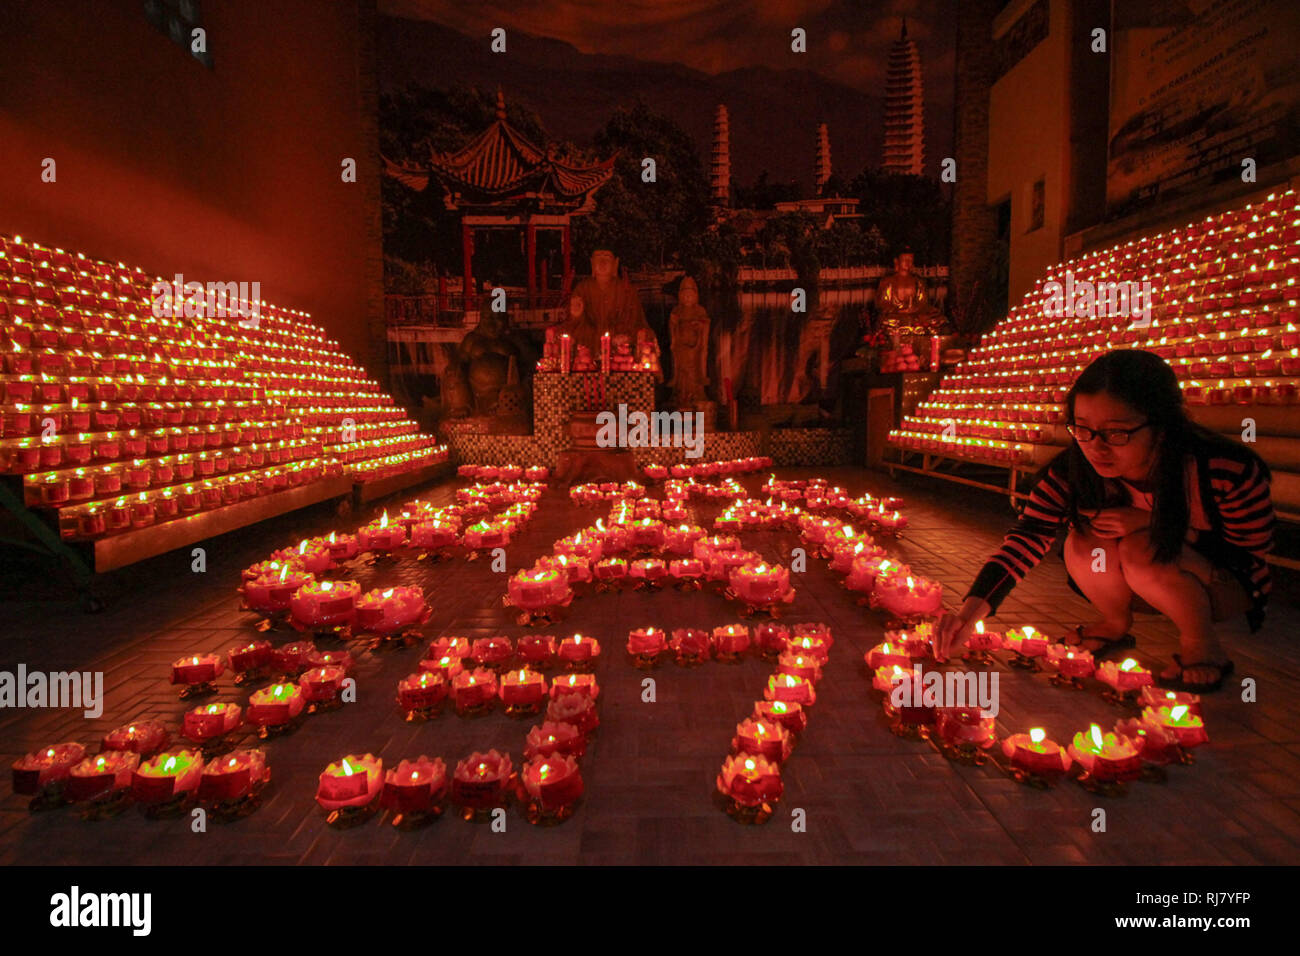 Palembang, South Sumatra, Indonesia. 4th Feb, 2019. Indonesia chinese pray at Dharmakirti temple during celebrate Chinese Lunar New Years on February 04, 2019 in Palembang city, South Sumatra province, Indonesia. Credit: Sijori Images/ZUMA Wire/Alamy Live News - Stock Image